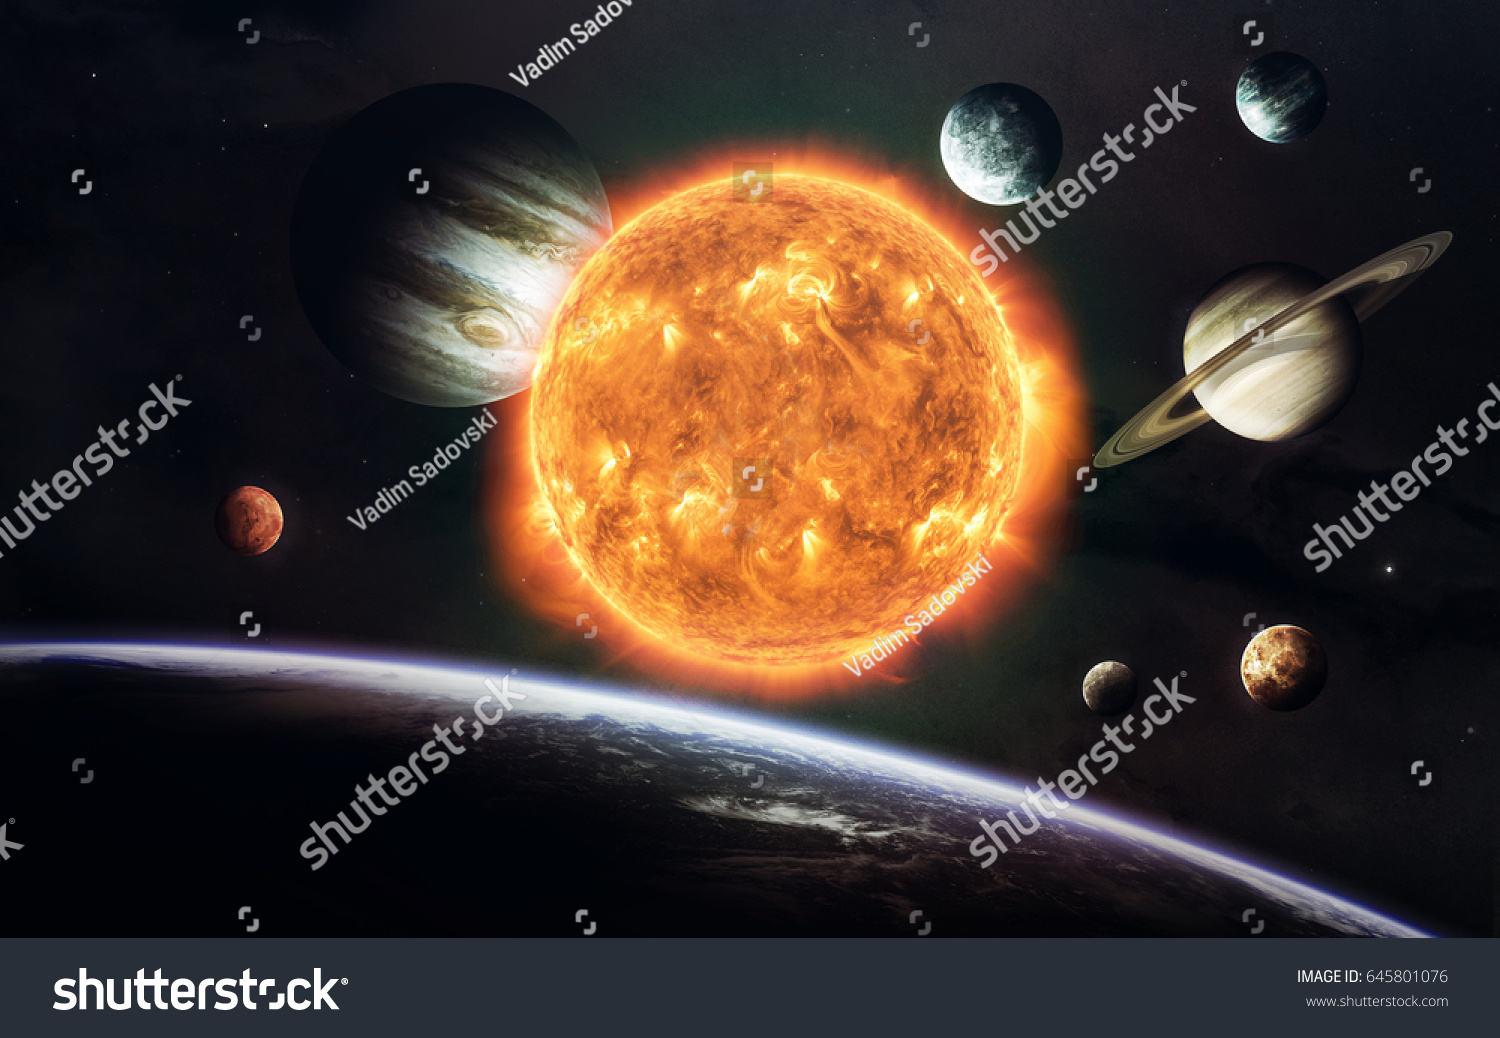 earth mars others science fiction space stock photo (edit now